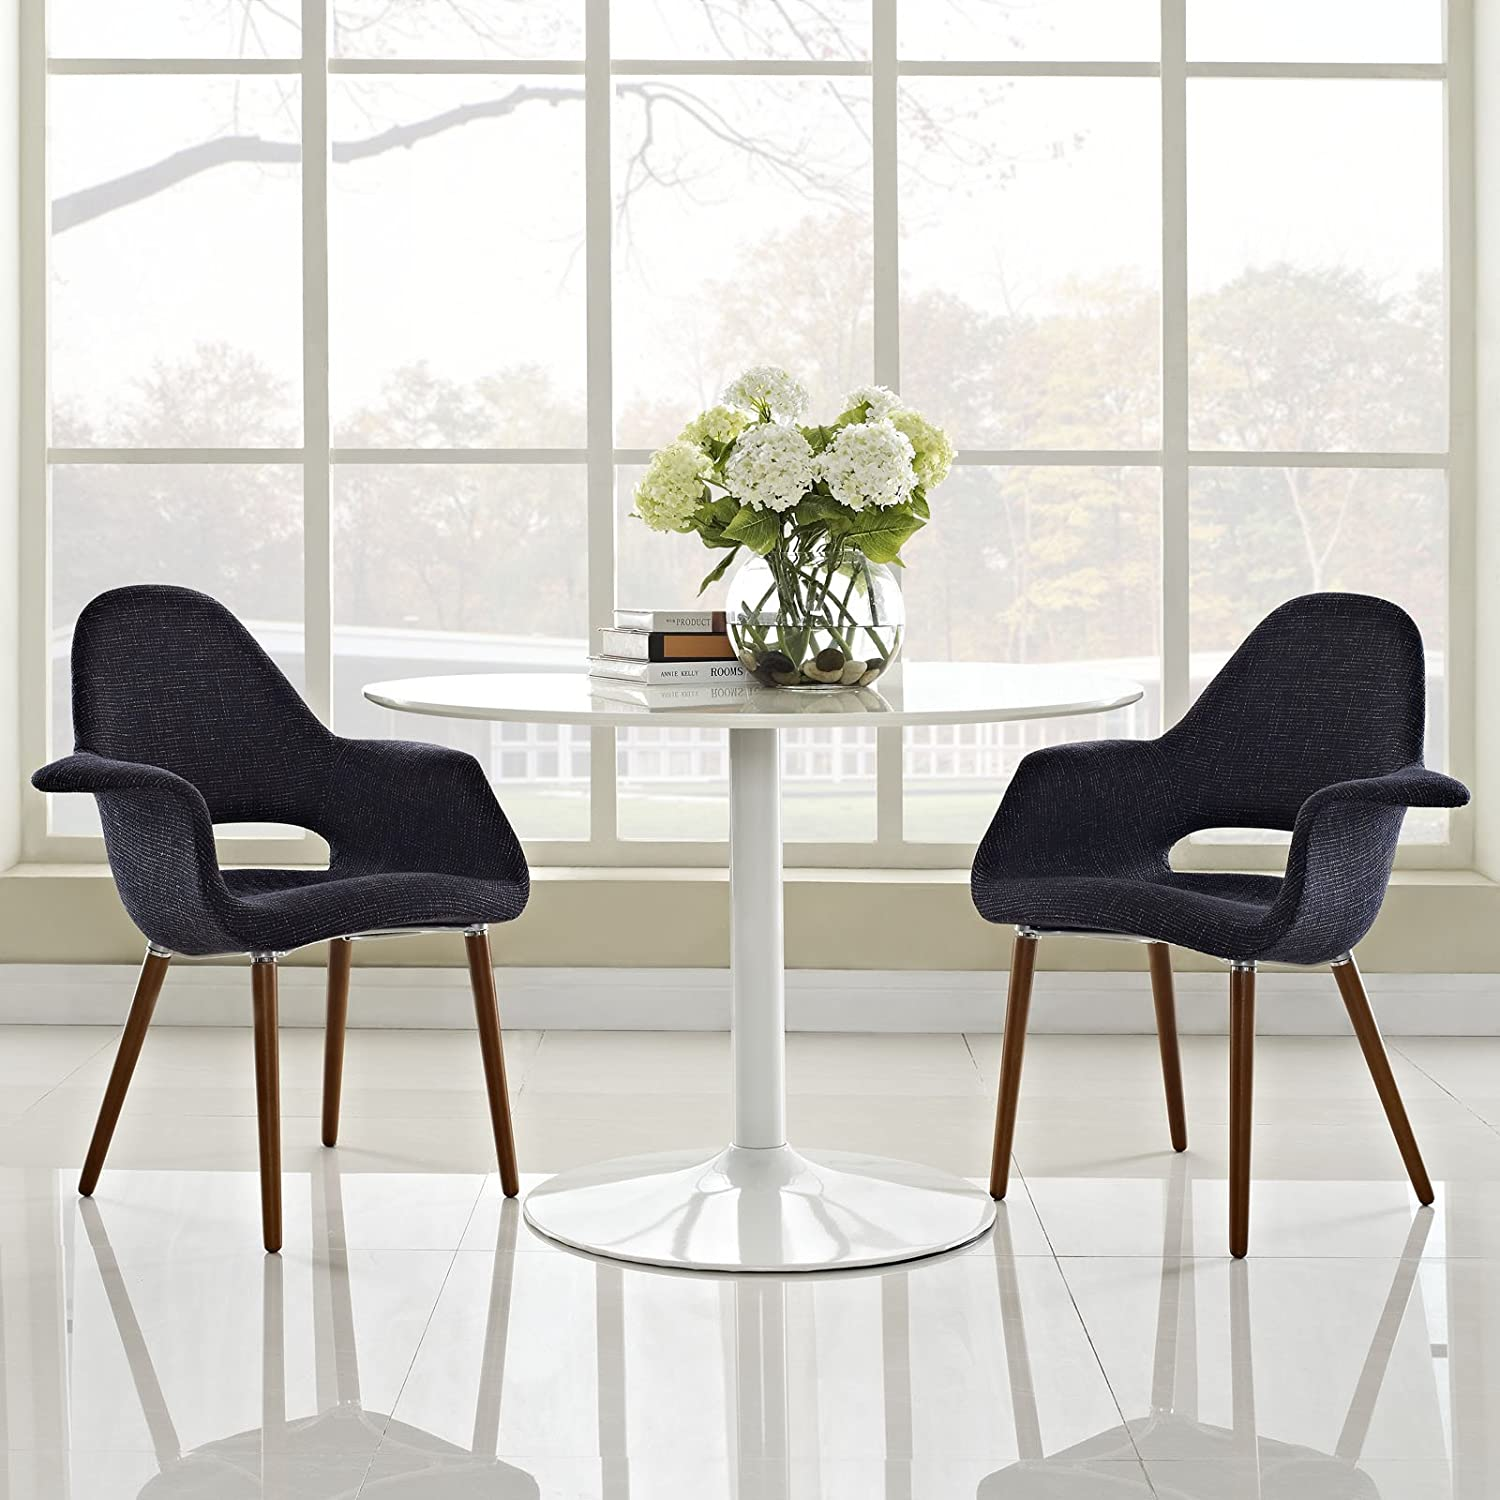 Modway Aegis Mid-Century Modern Upholstered Fabric Two Kitchen and Dining Room Chairs with Wood Legs in Black